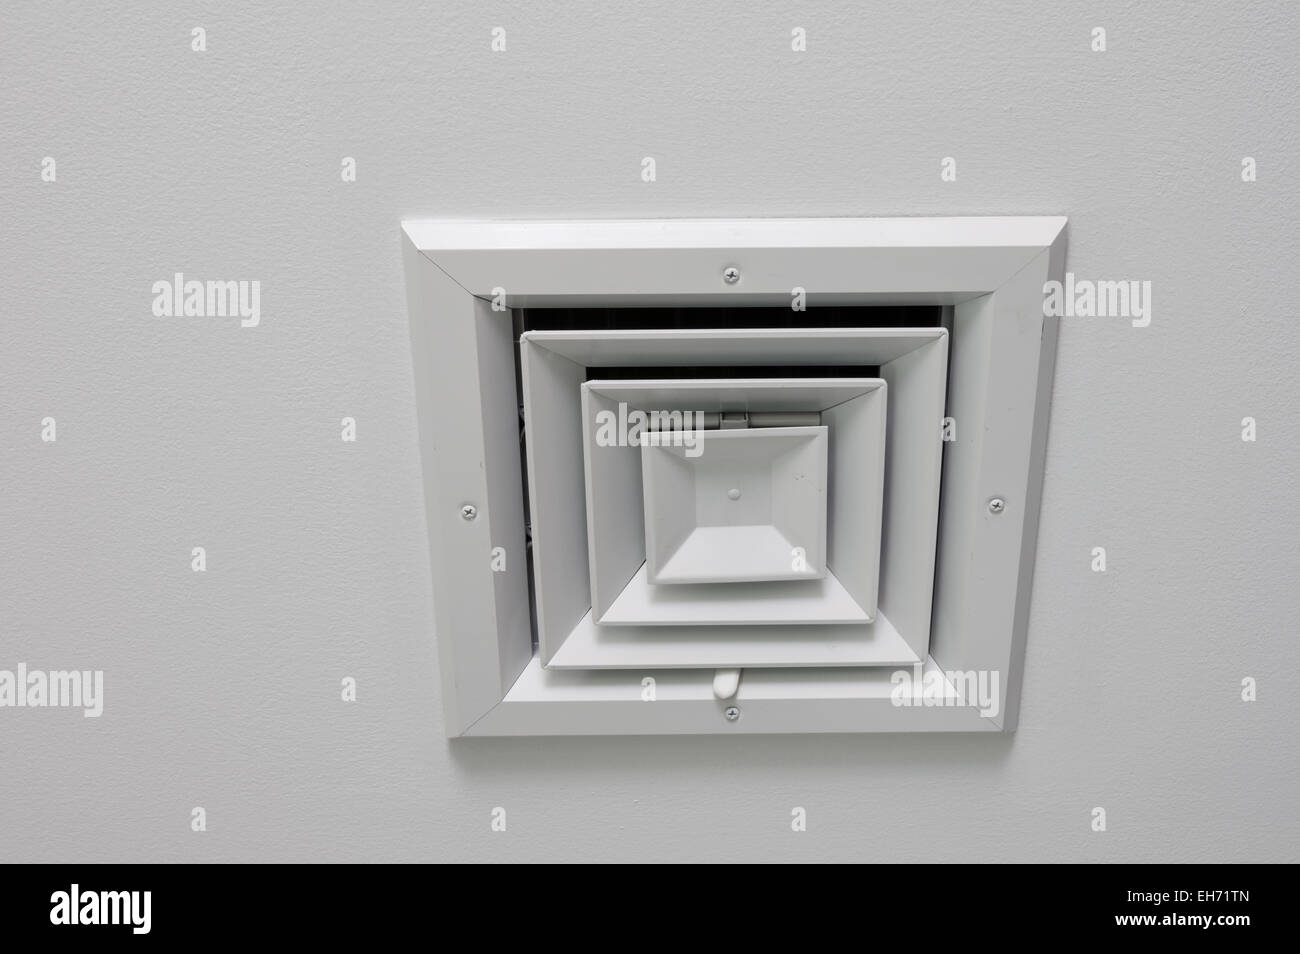 angled view of a ceiling air vent on a white ceiling - Stock Image